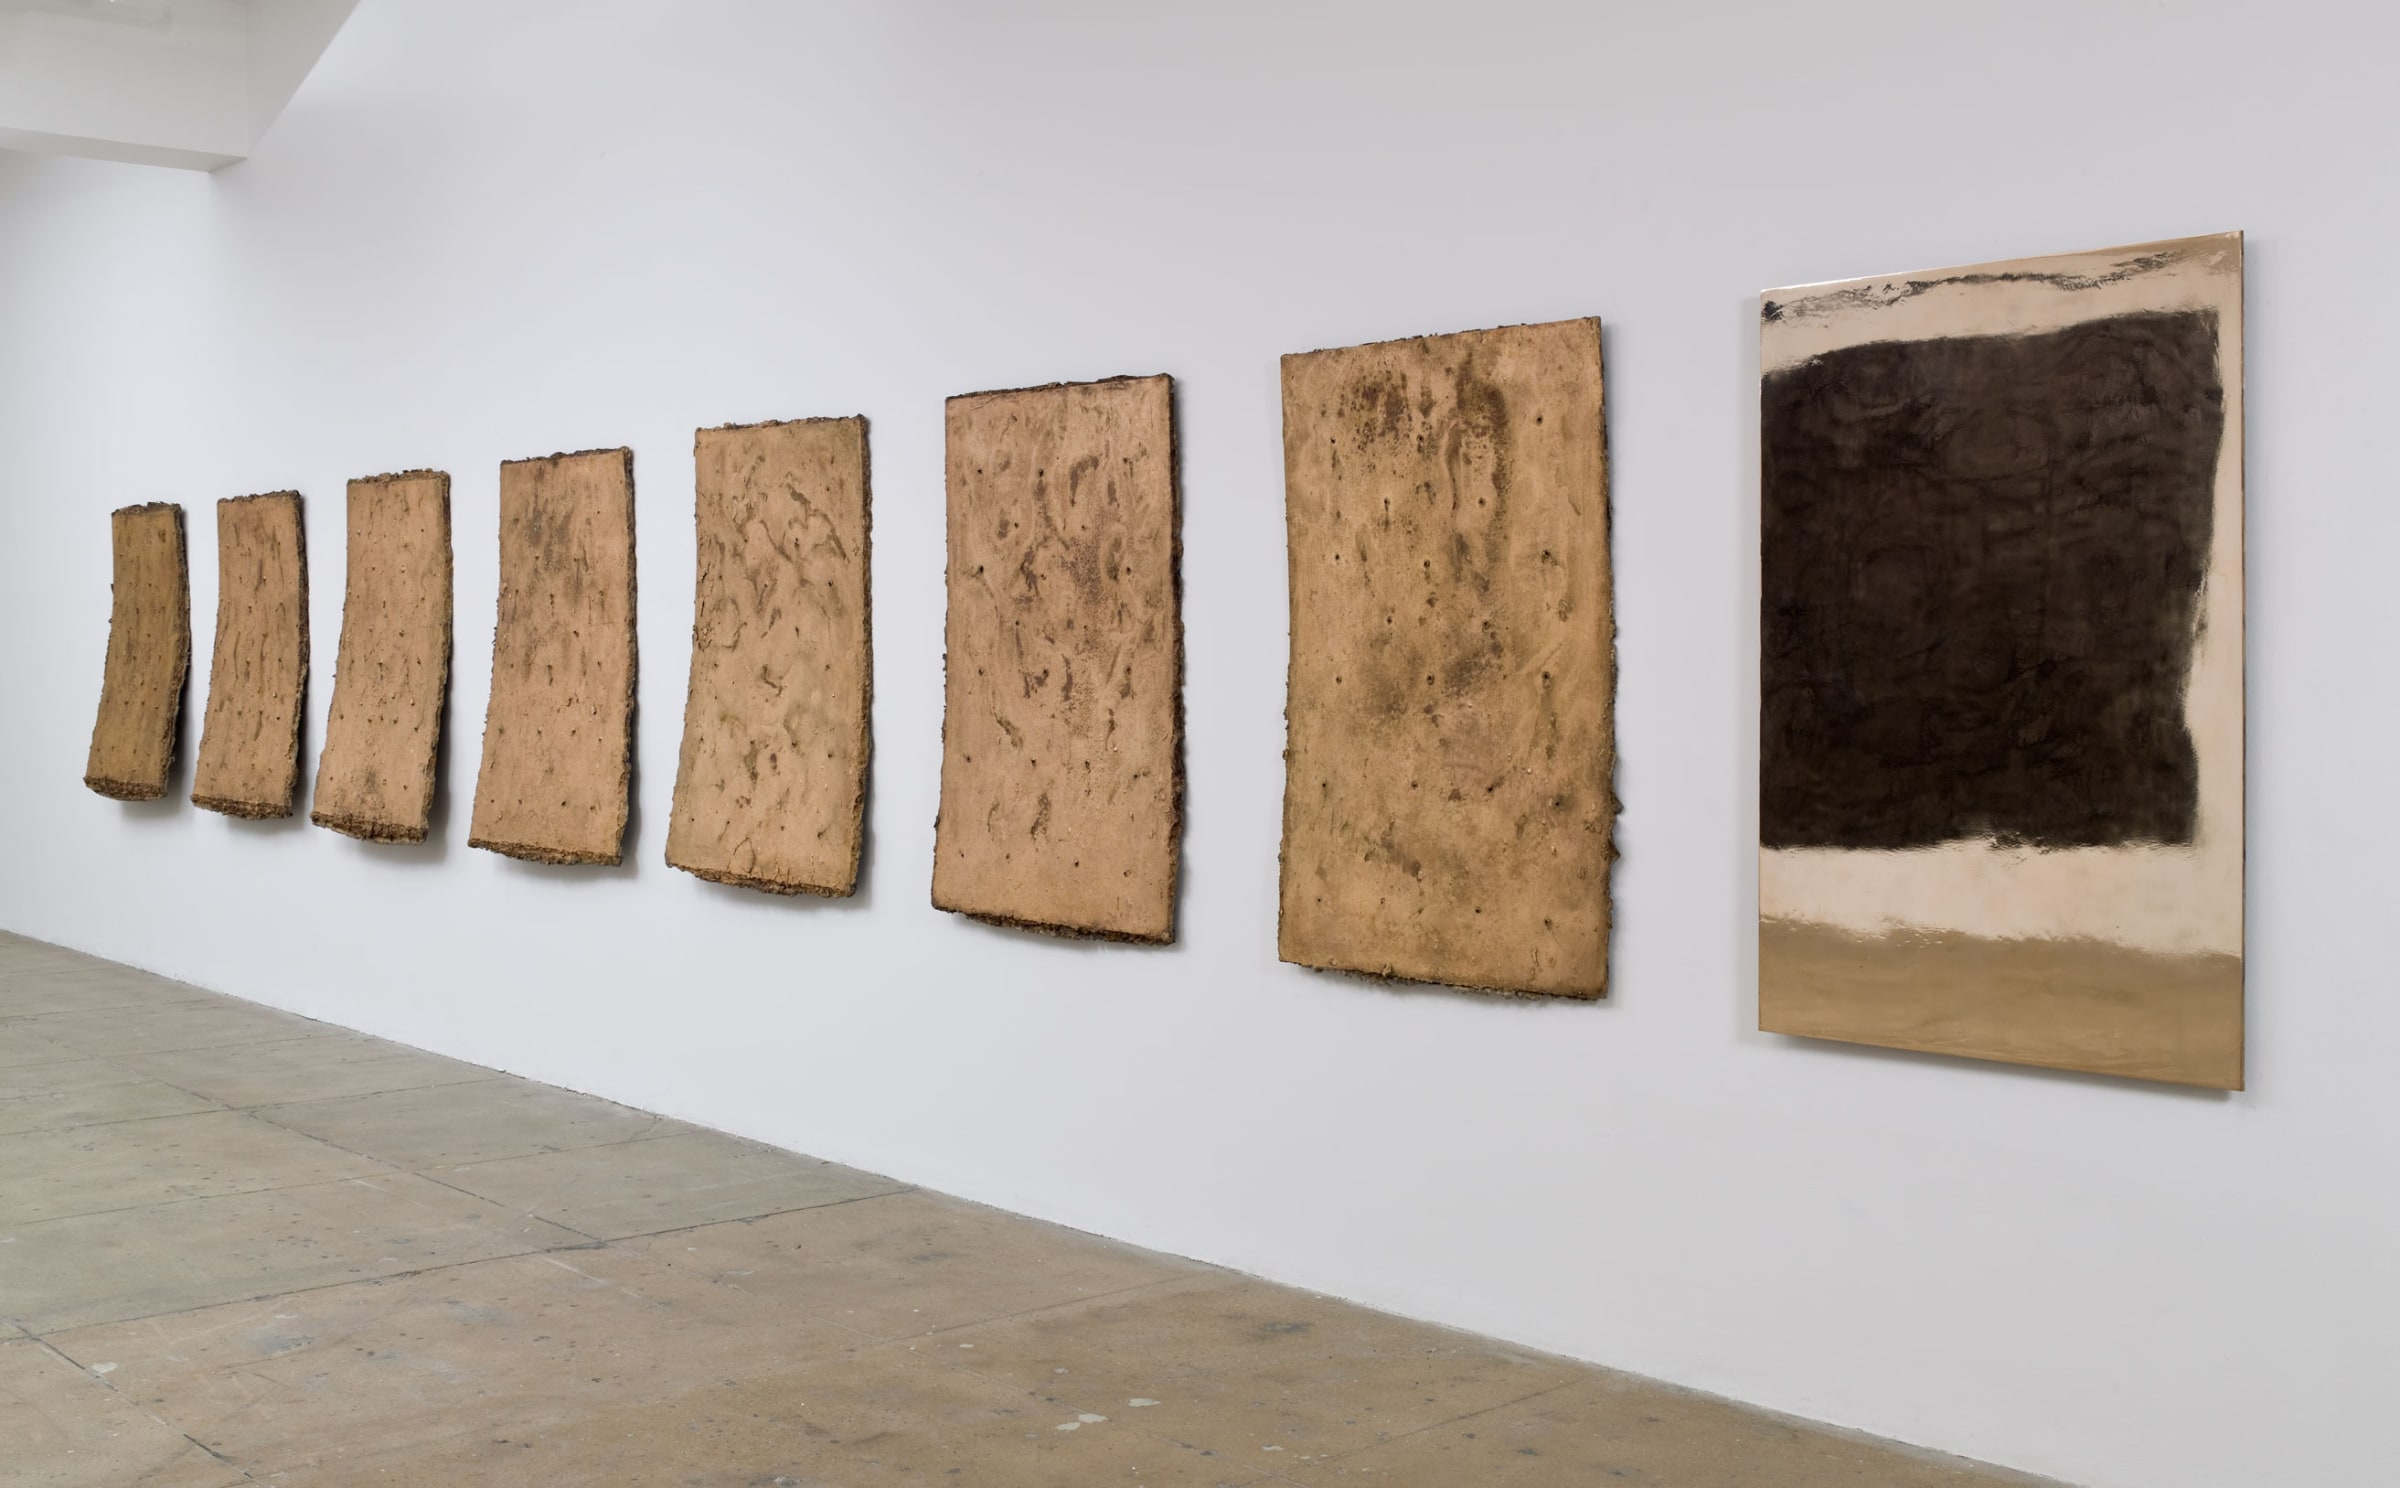 Seven cut outs of what appears to be beige leather hang on a white wall. The right most piece is painted black and white, the rest are bare.